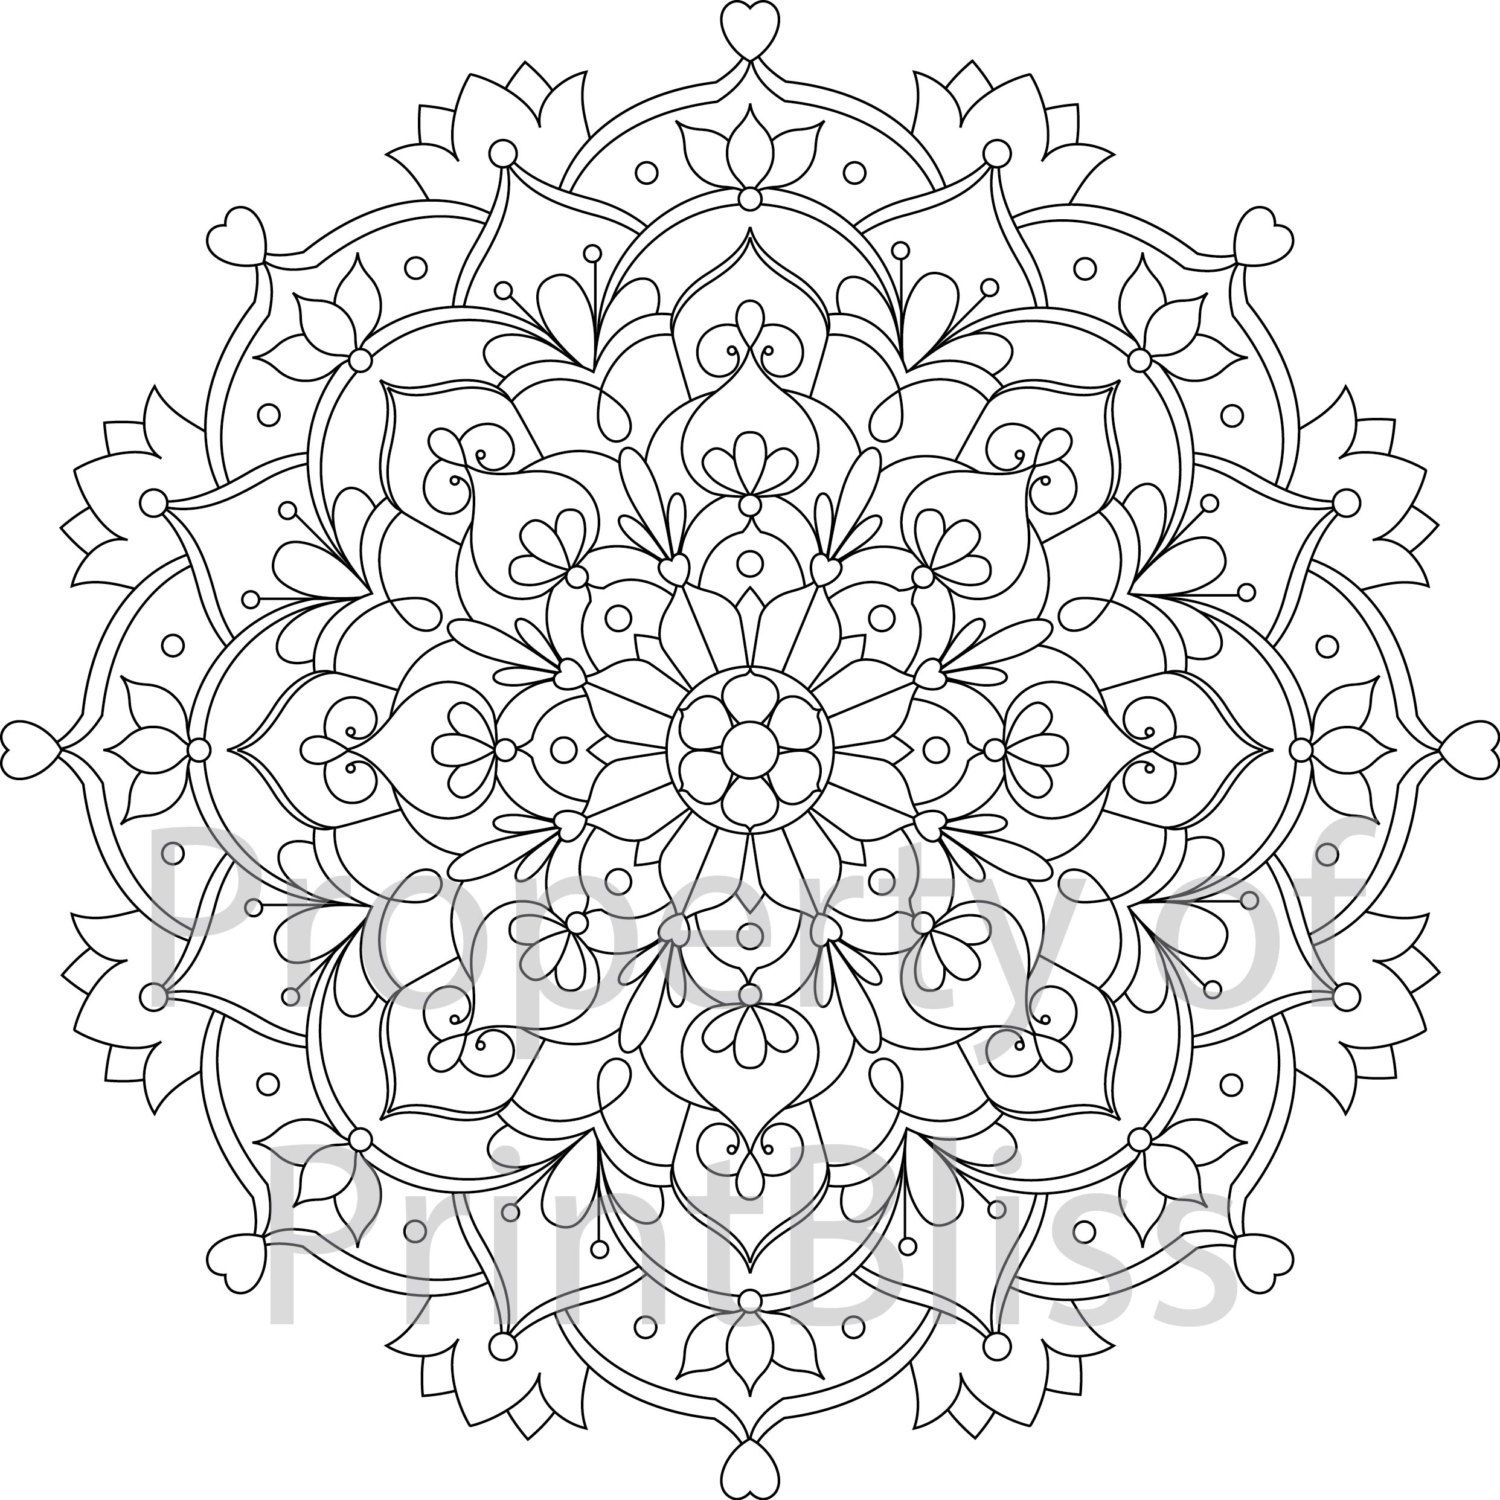 29 flower mandala printable coloring page by printbliss on etsy